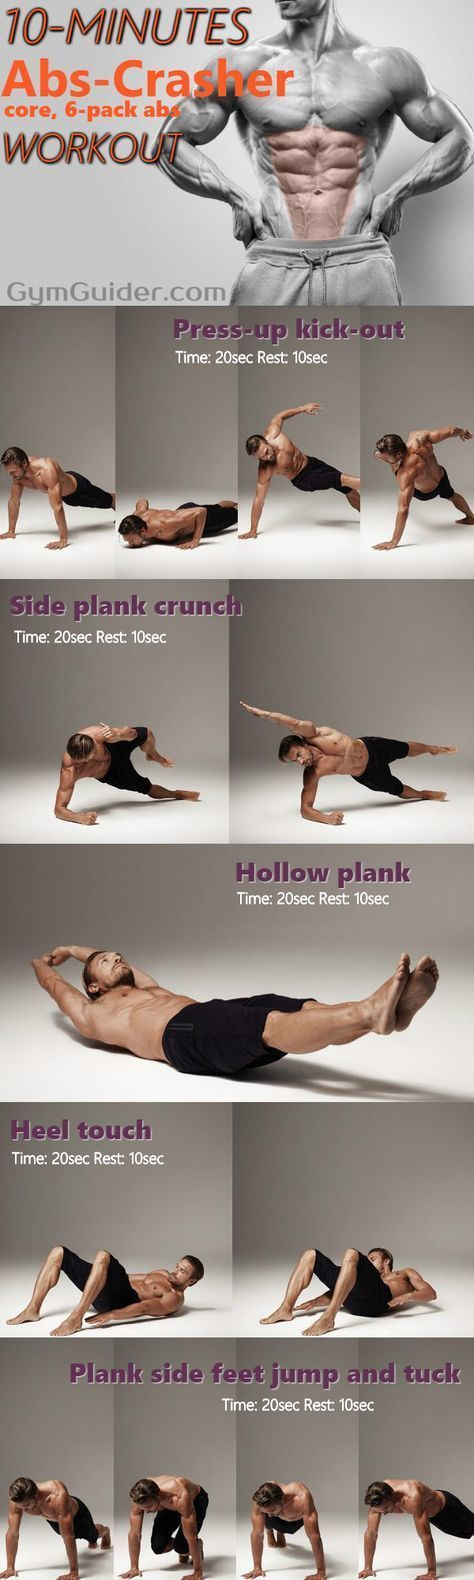 10 Minute Home Bodyweight Abs Crusher Workout - GymGuider.com